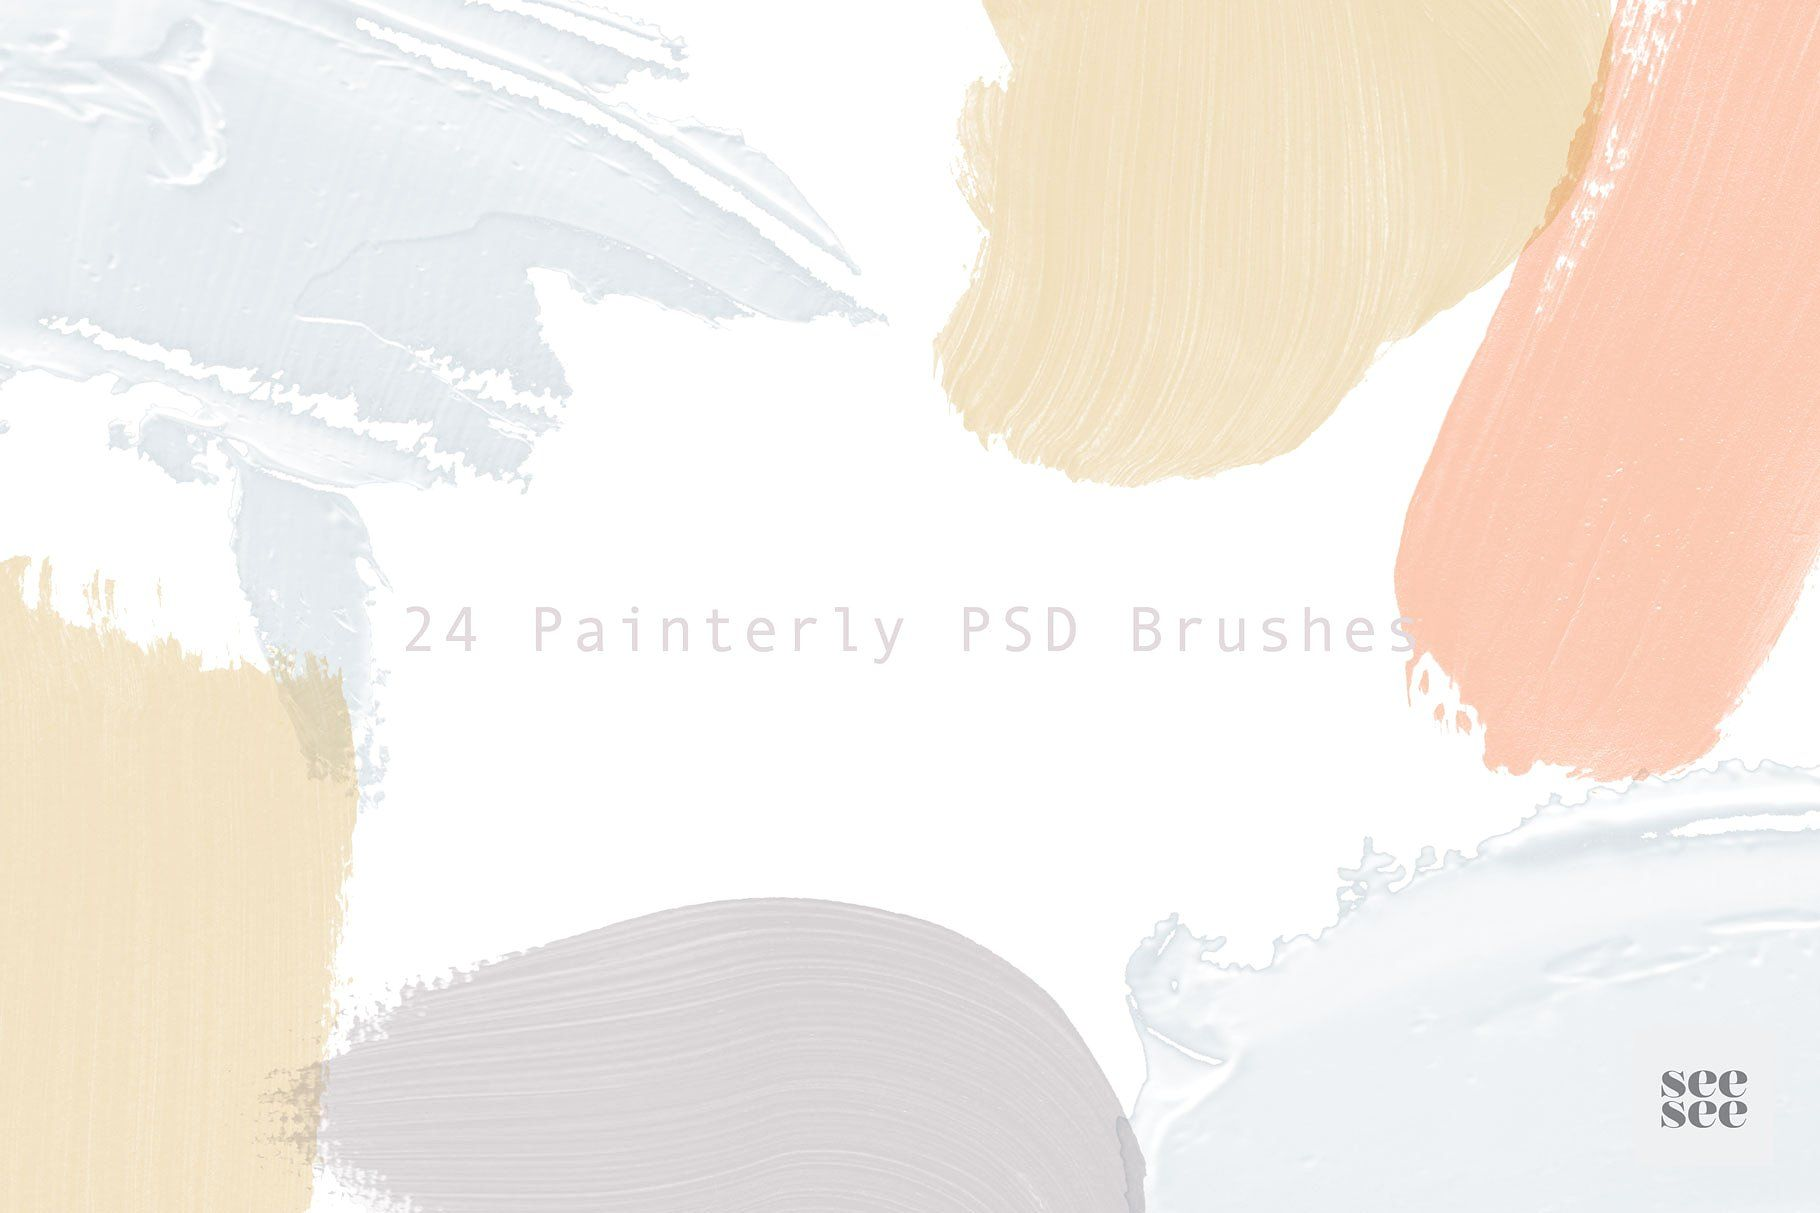 24 Painterly Psd Brushes Psd Brushes Photoshop Resources Psd